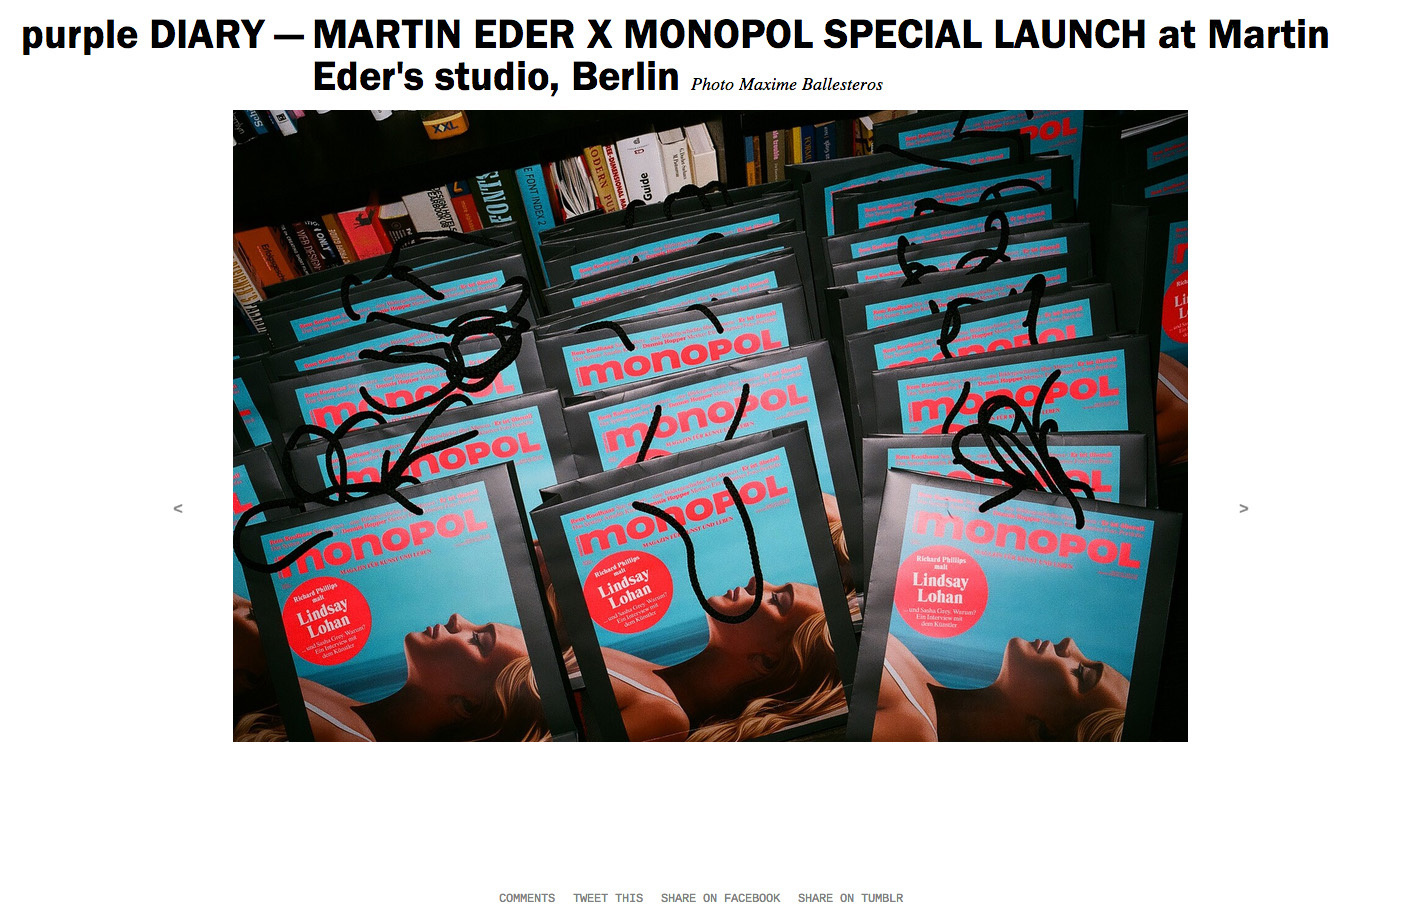 purple DIARY   MARTIN EDER X MONOPOL SPECIAL LAUNCH at Martin Eder s studio  Berlin.jpg